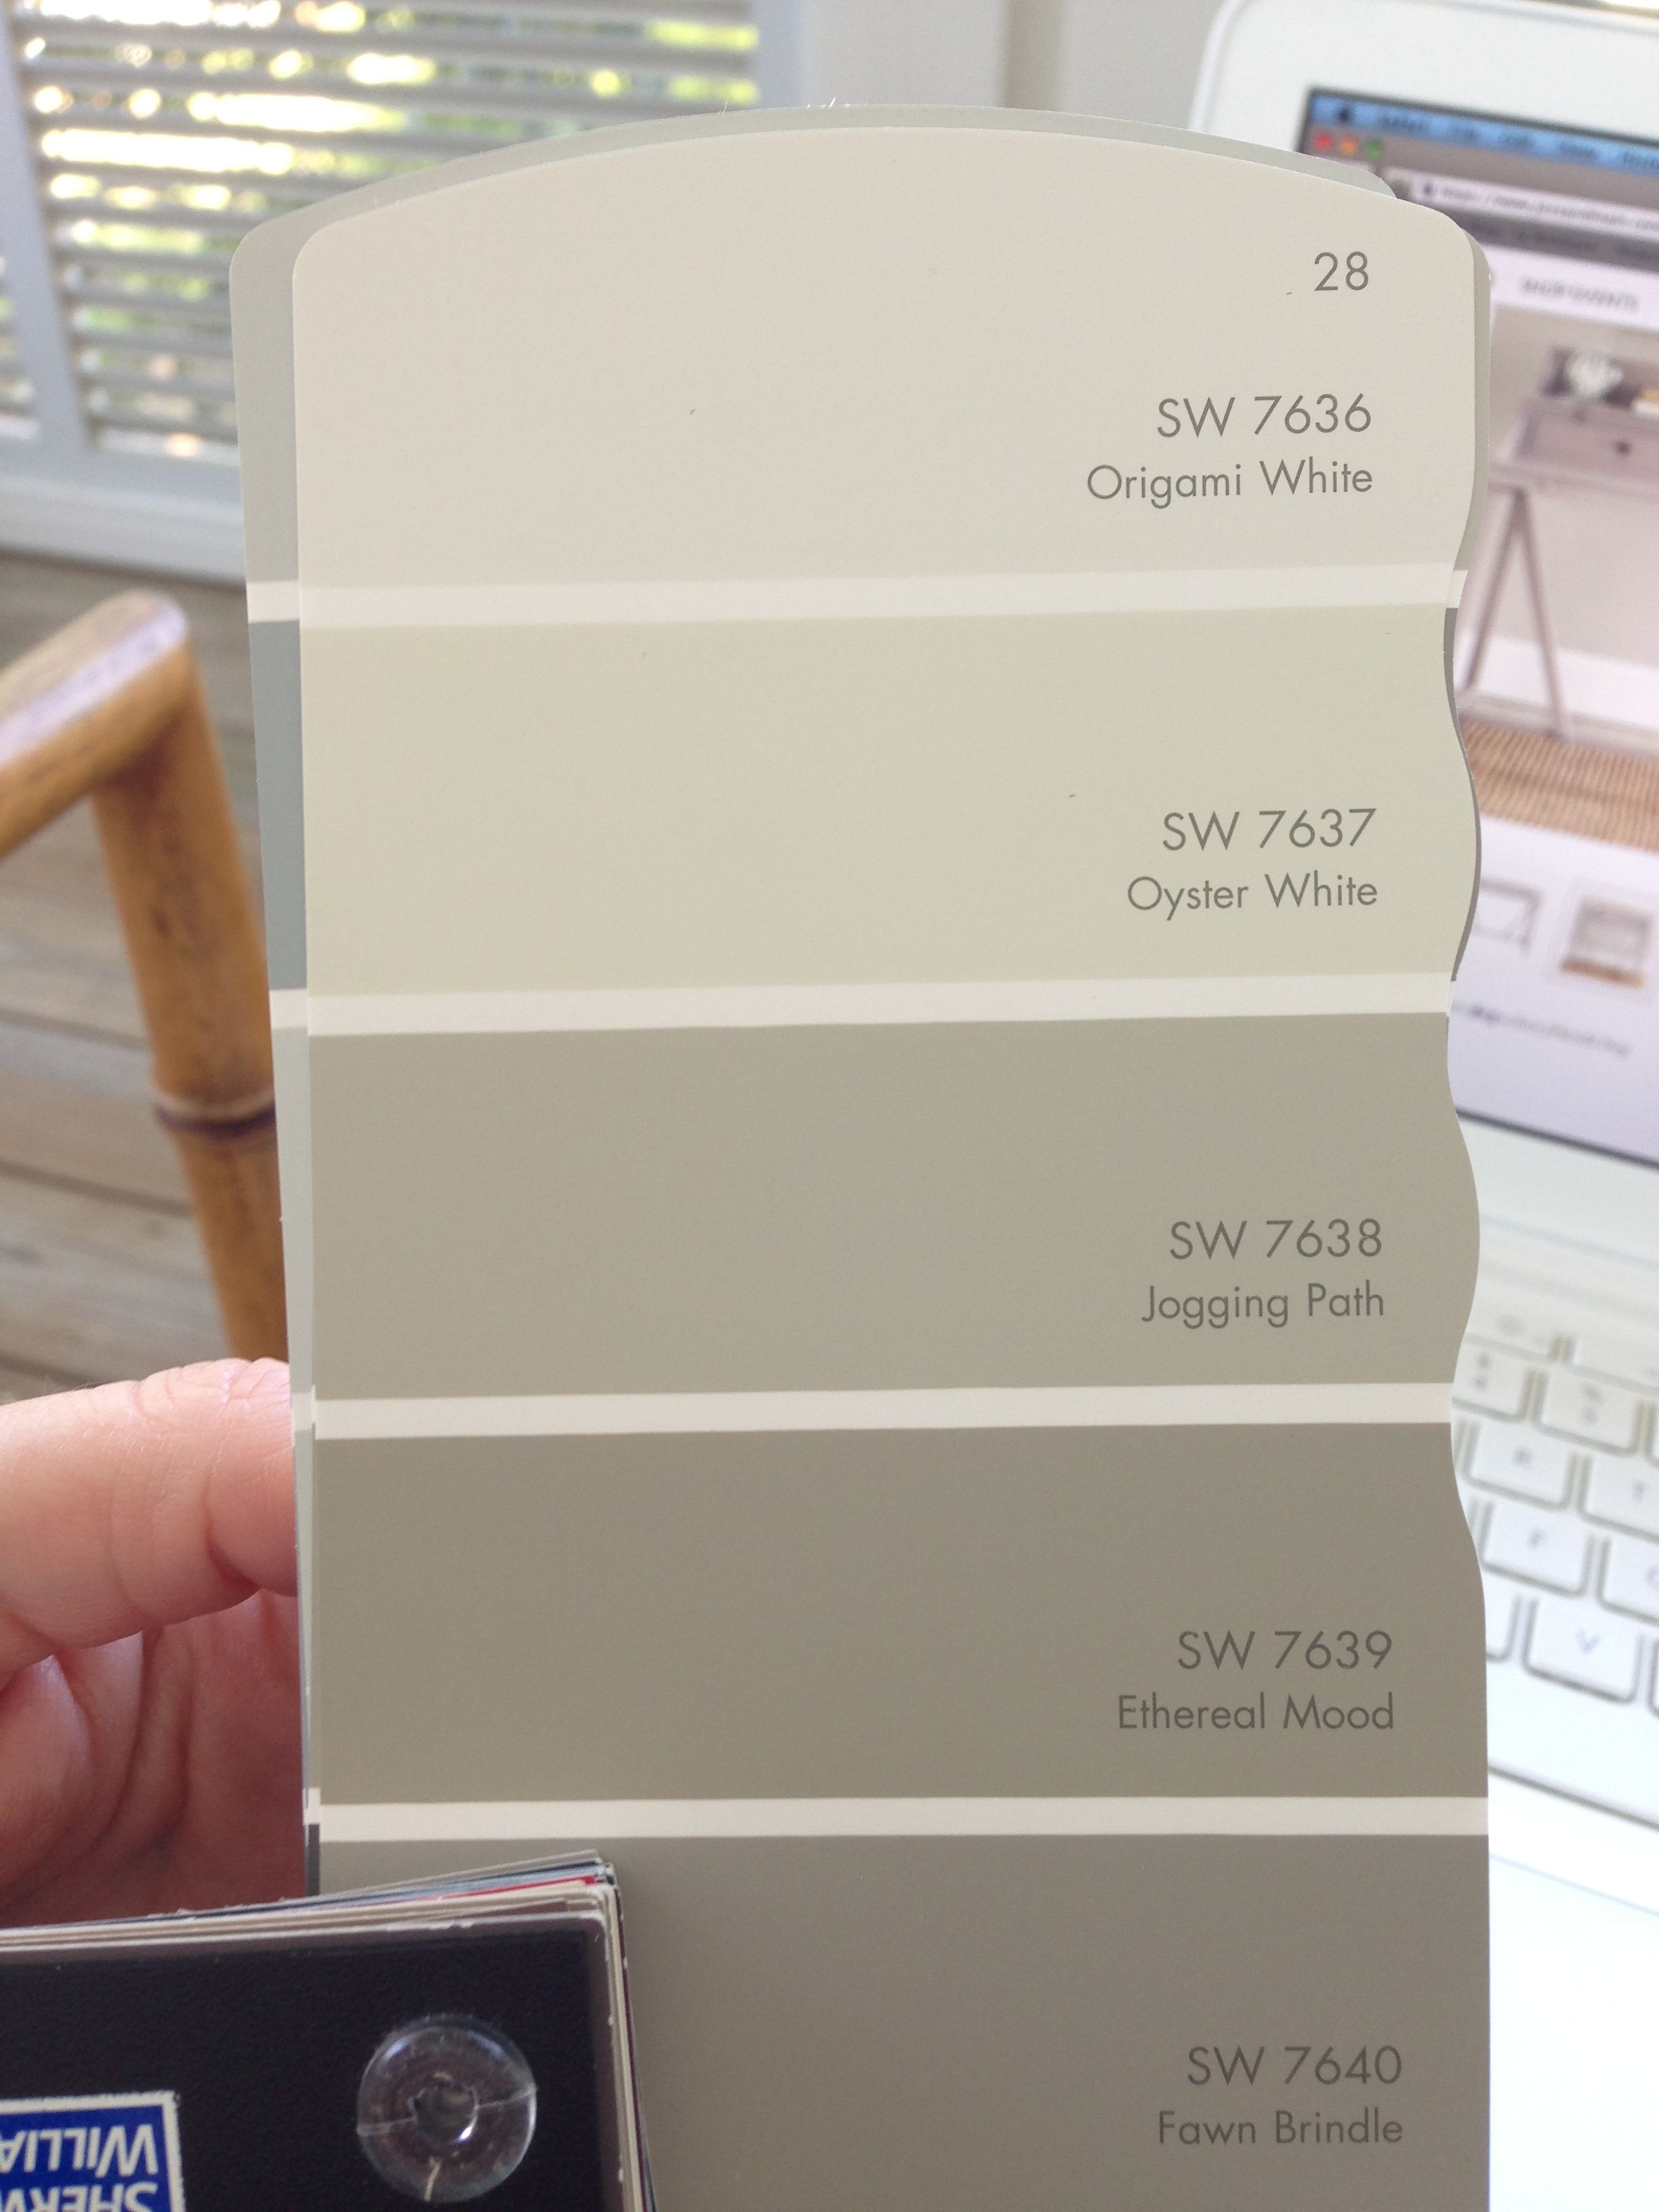 Oyster White For Brick Jogging Path For Shutters Ethereal Mood